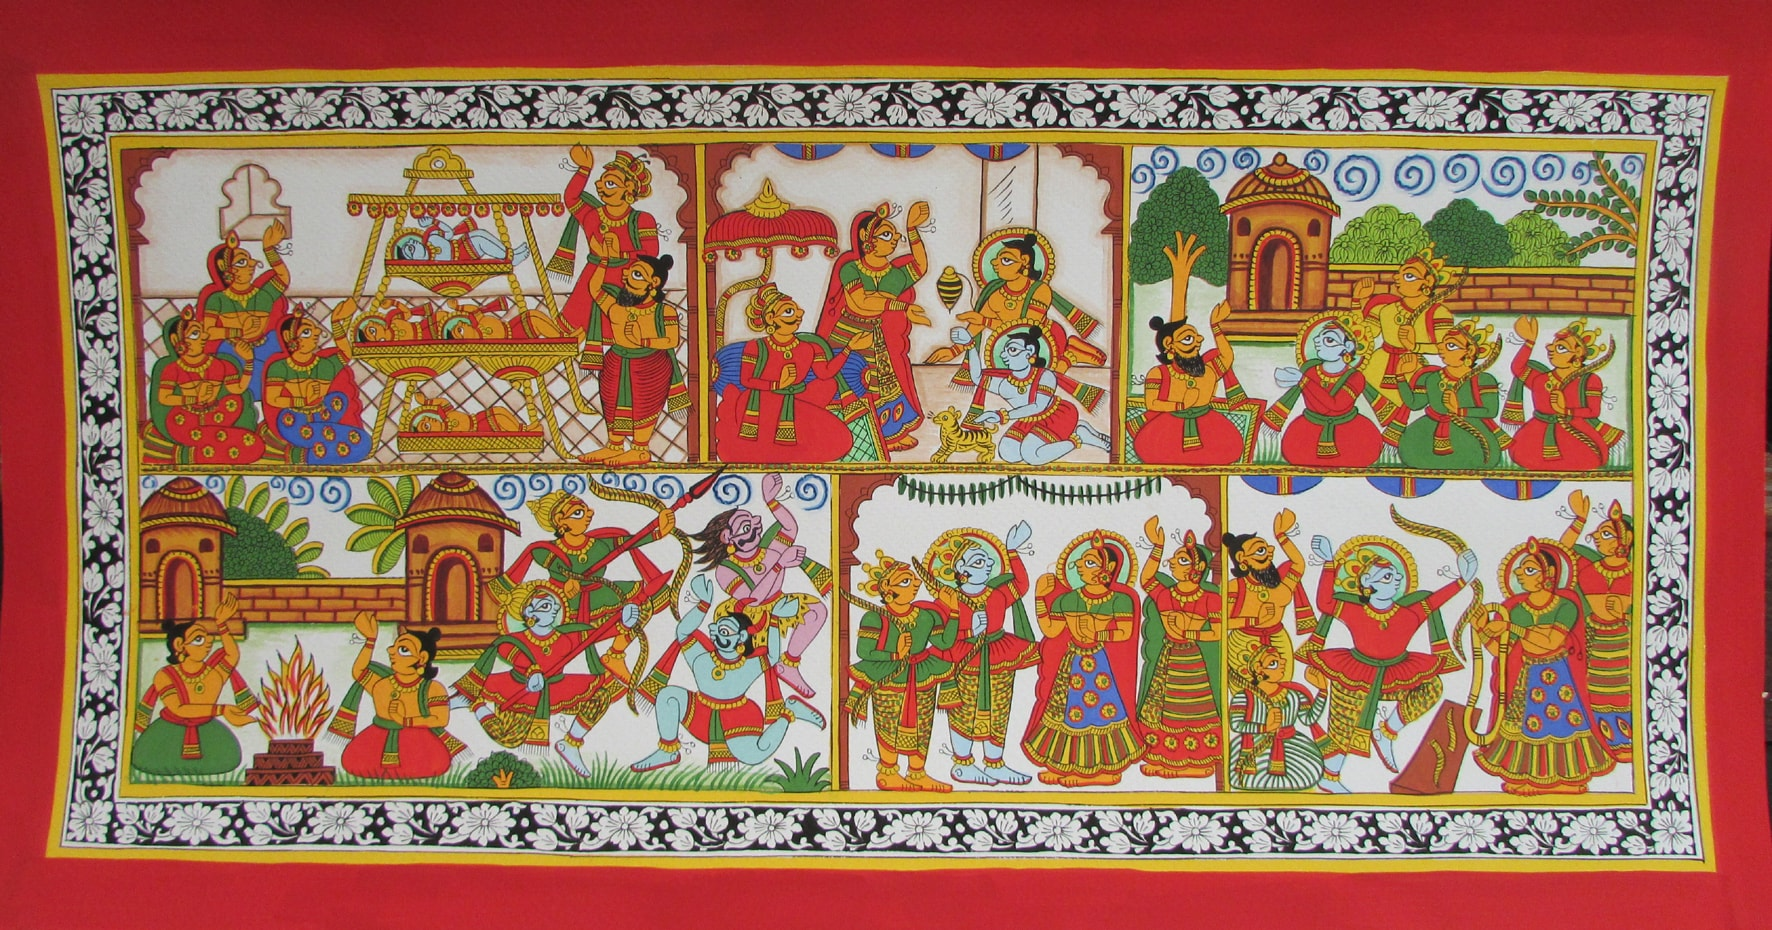 A phad painting depicting scenes from the Ramayana.